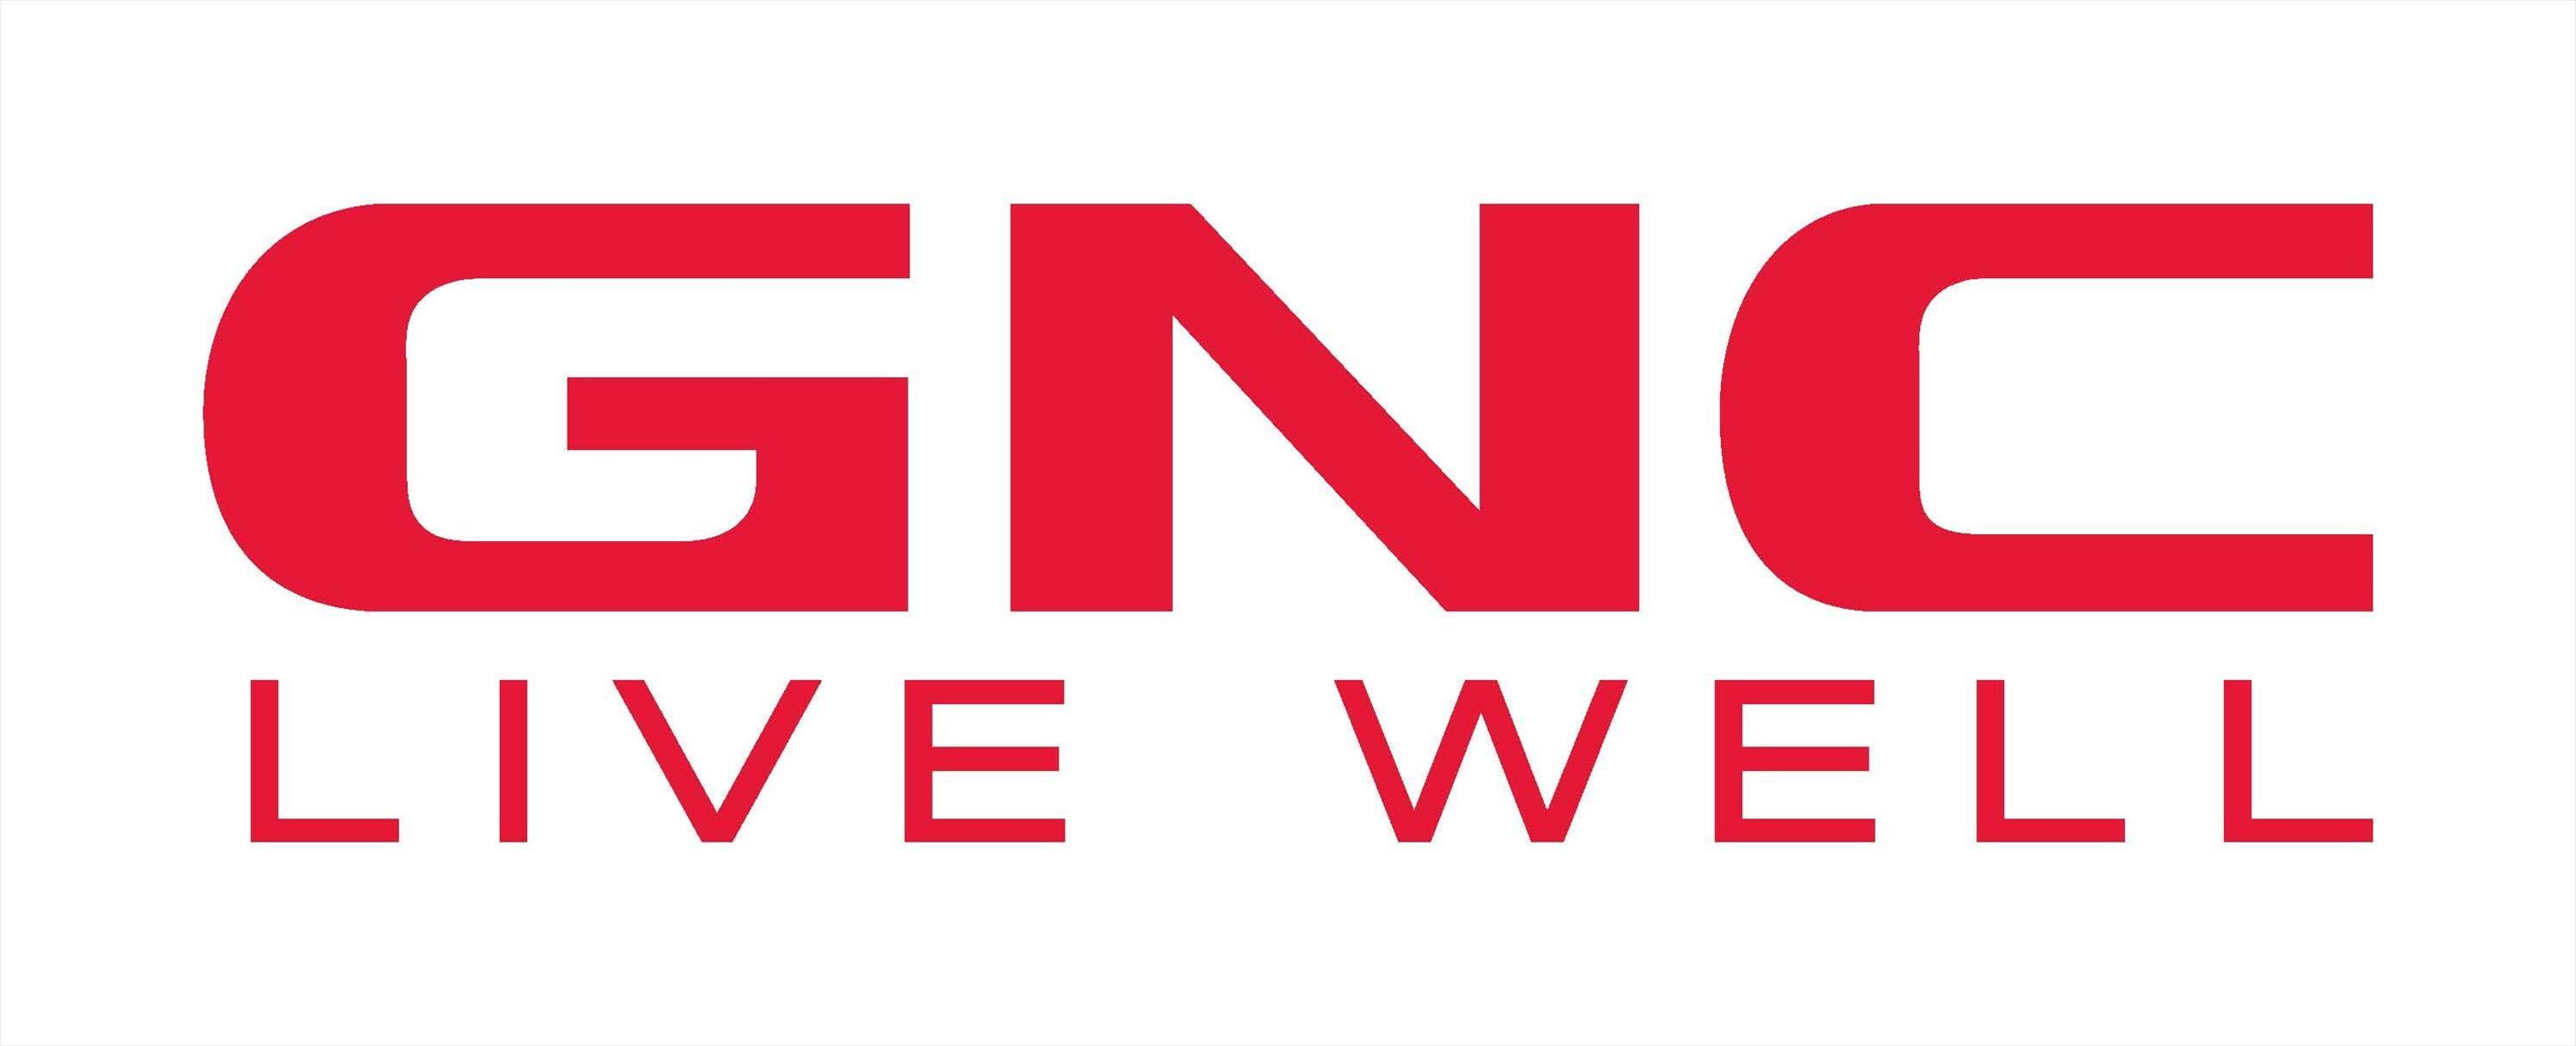 $9.99 Sale + Extra 15% Off on Top Vitamins, Minerals, Herbs and More @ GNC